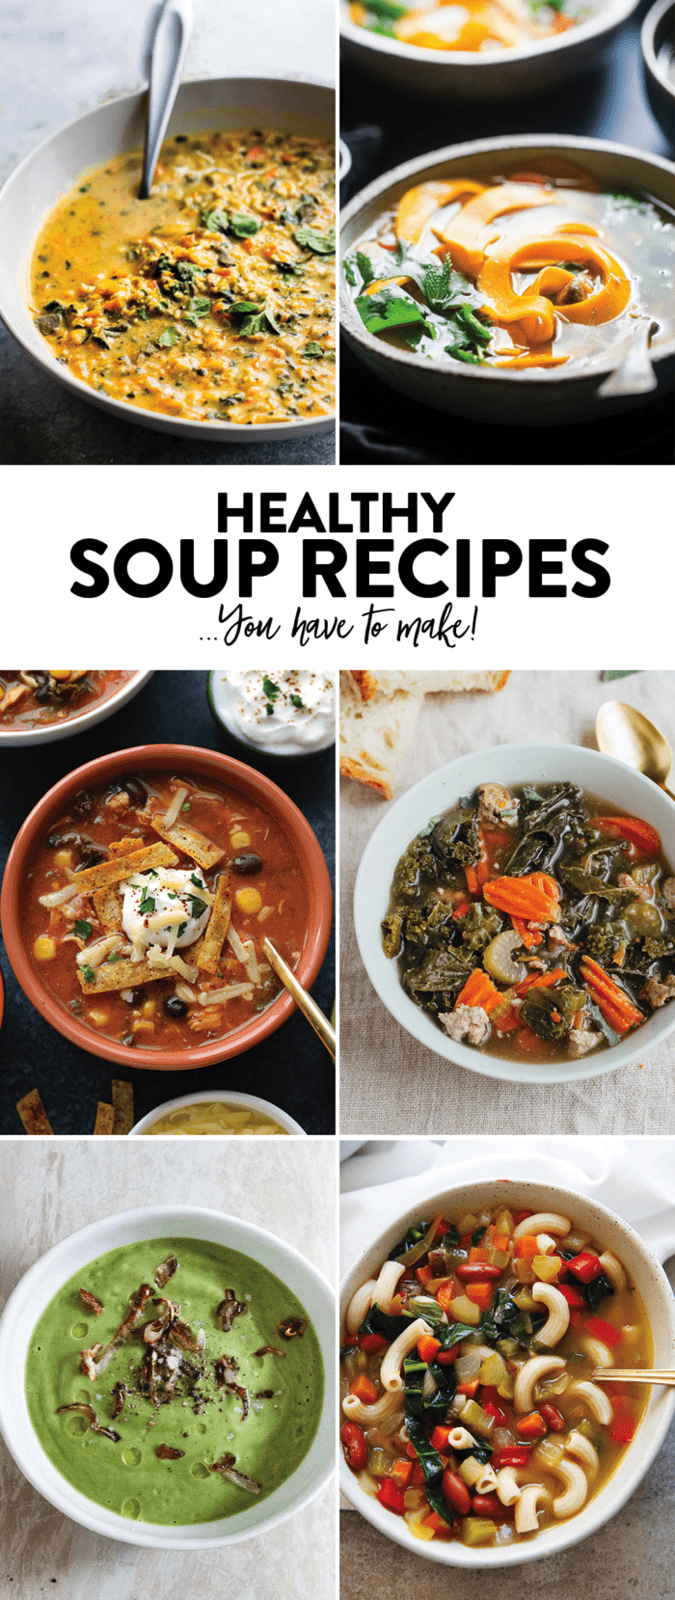 HEALTHY and Delicious Soup Recipes